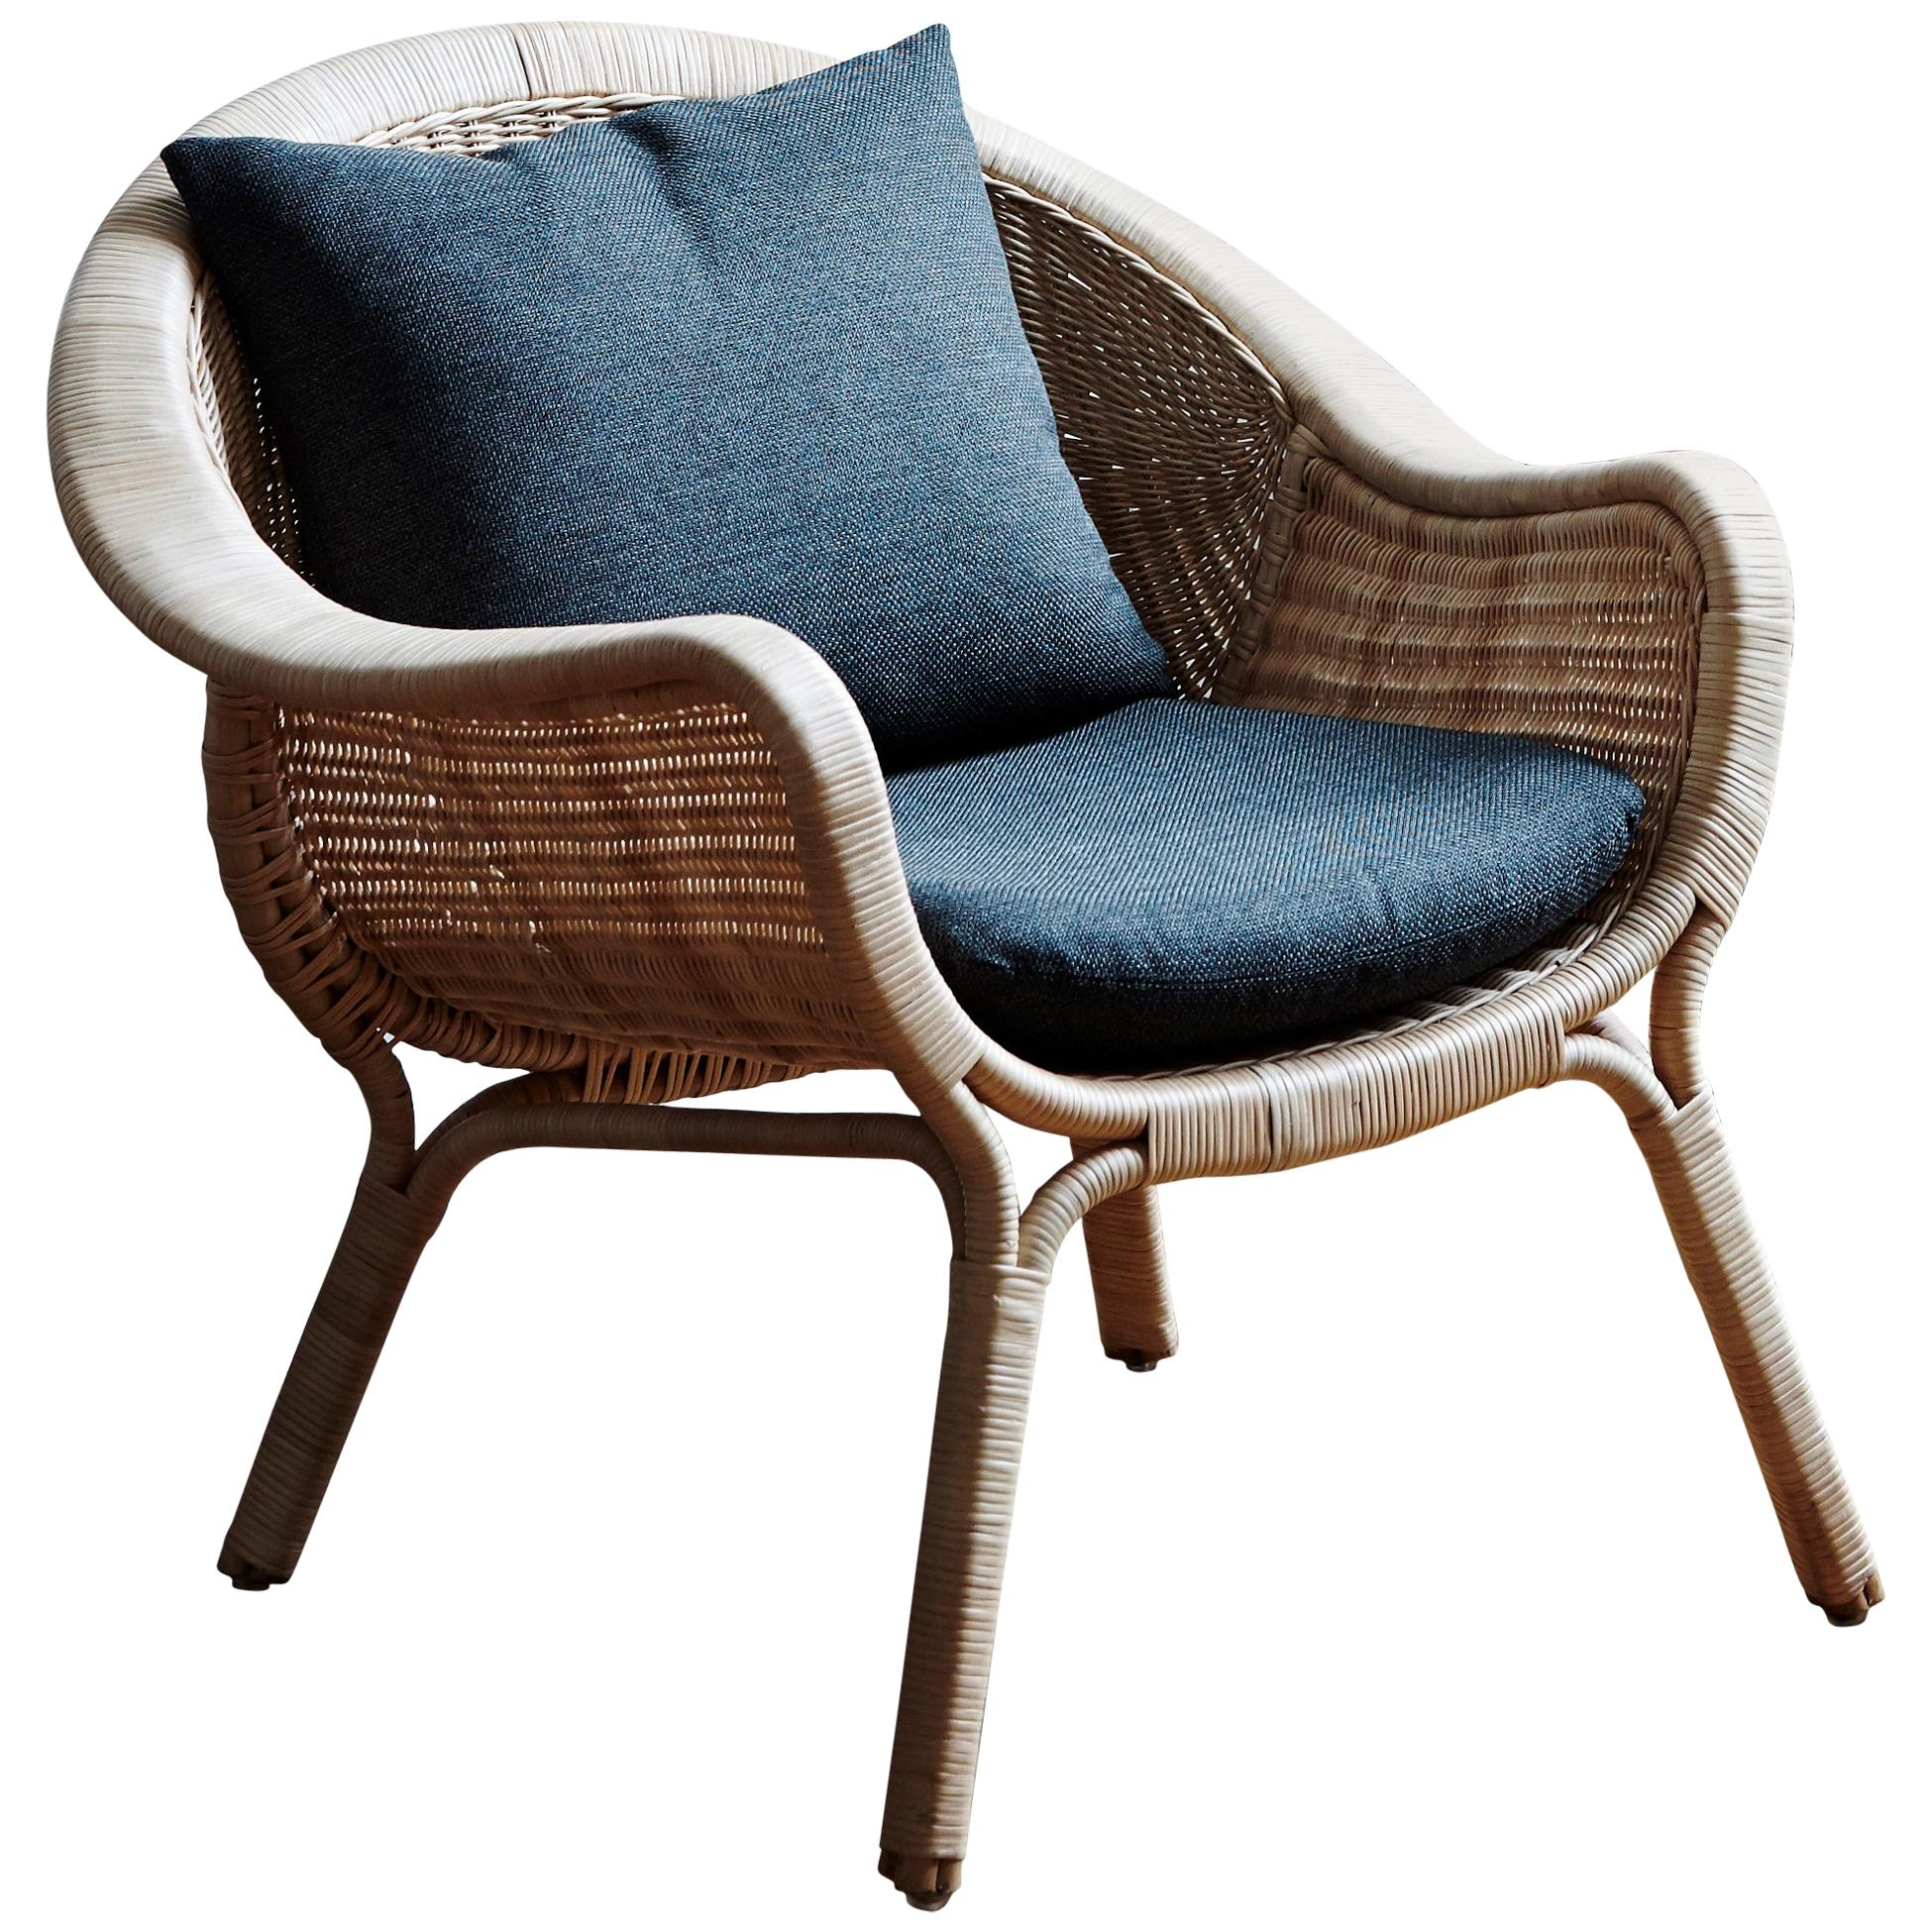 Madame Lounge Chair by Nanna Ditzel, New Edition